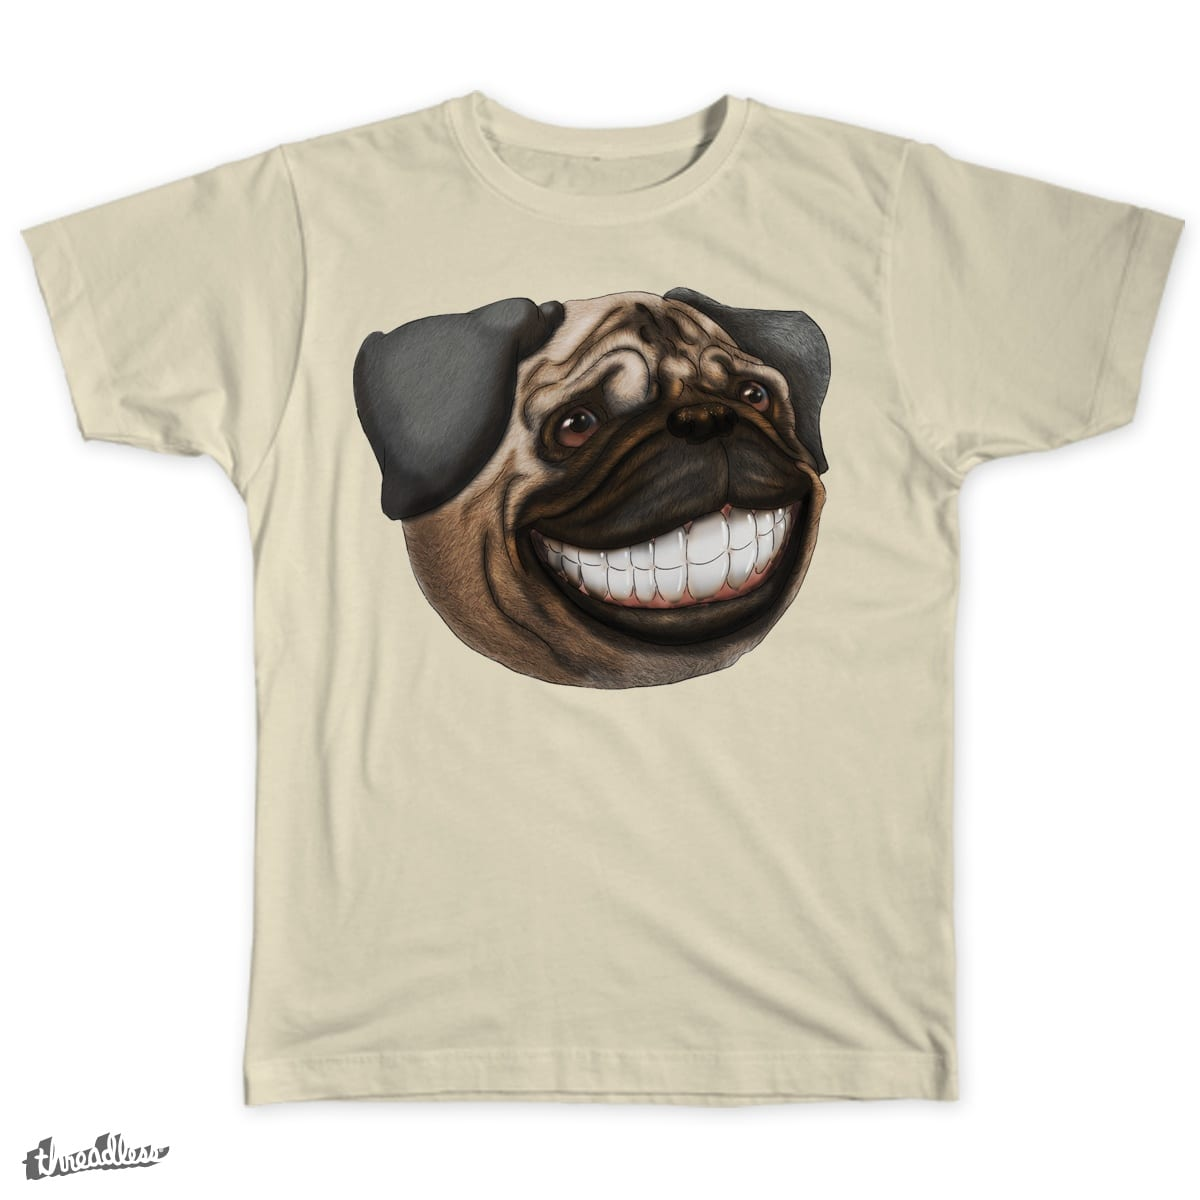 Laughing Dog by AK27JESSE on Threadless